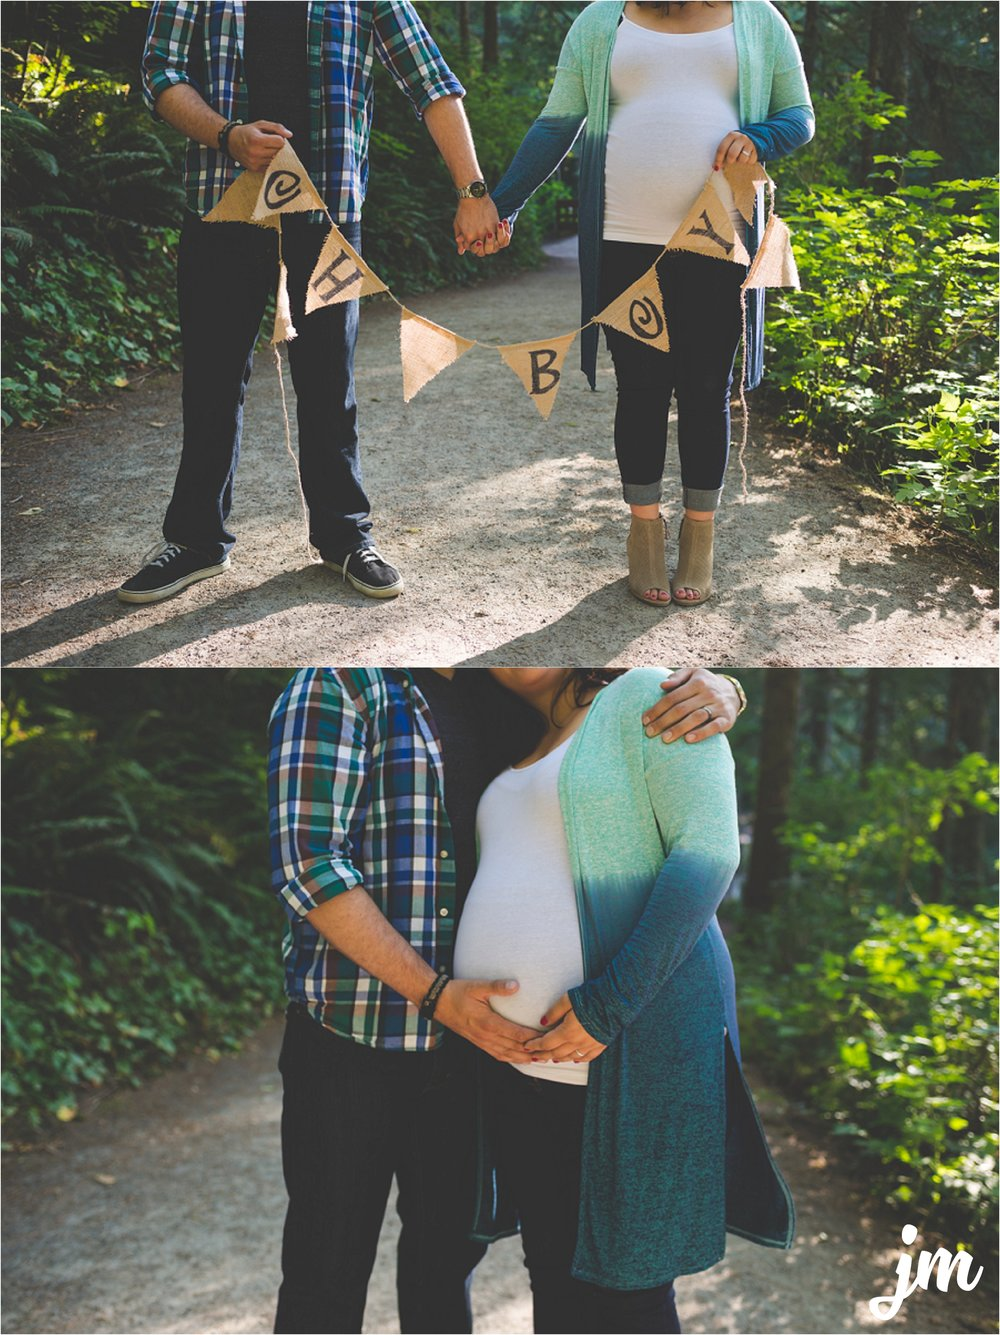 jannicka-mayte-moulton-falls-park-maternity-session-pacific-northwest-lifestyle-photographer_0010.jpg